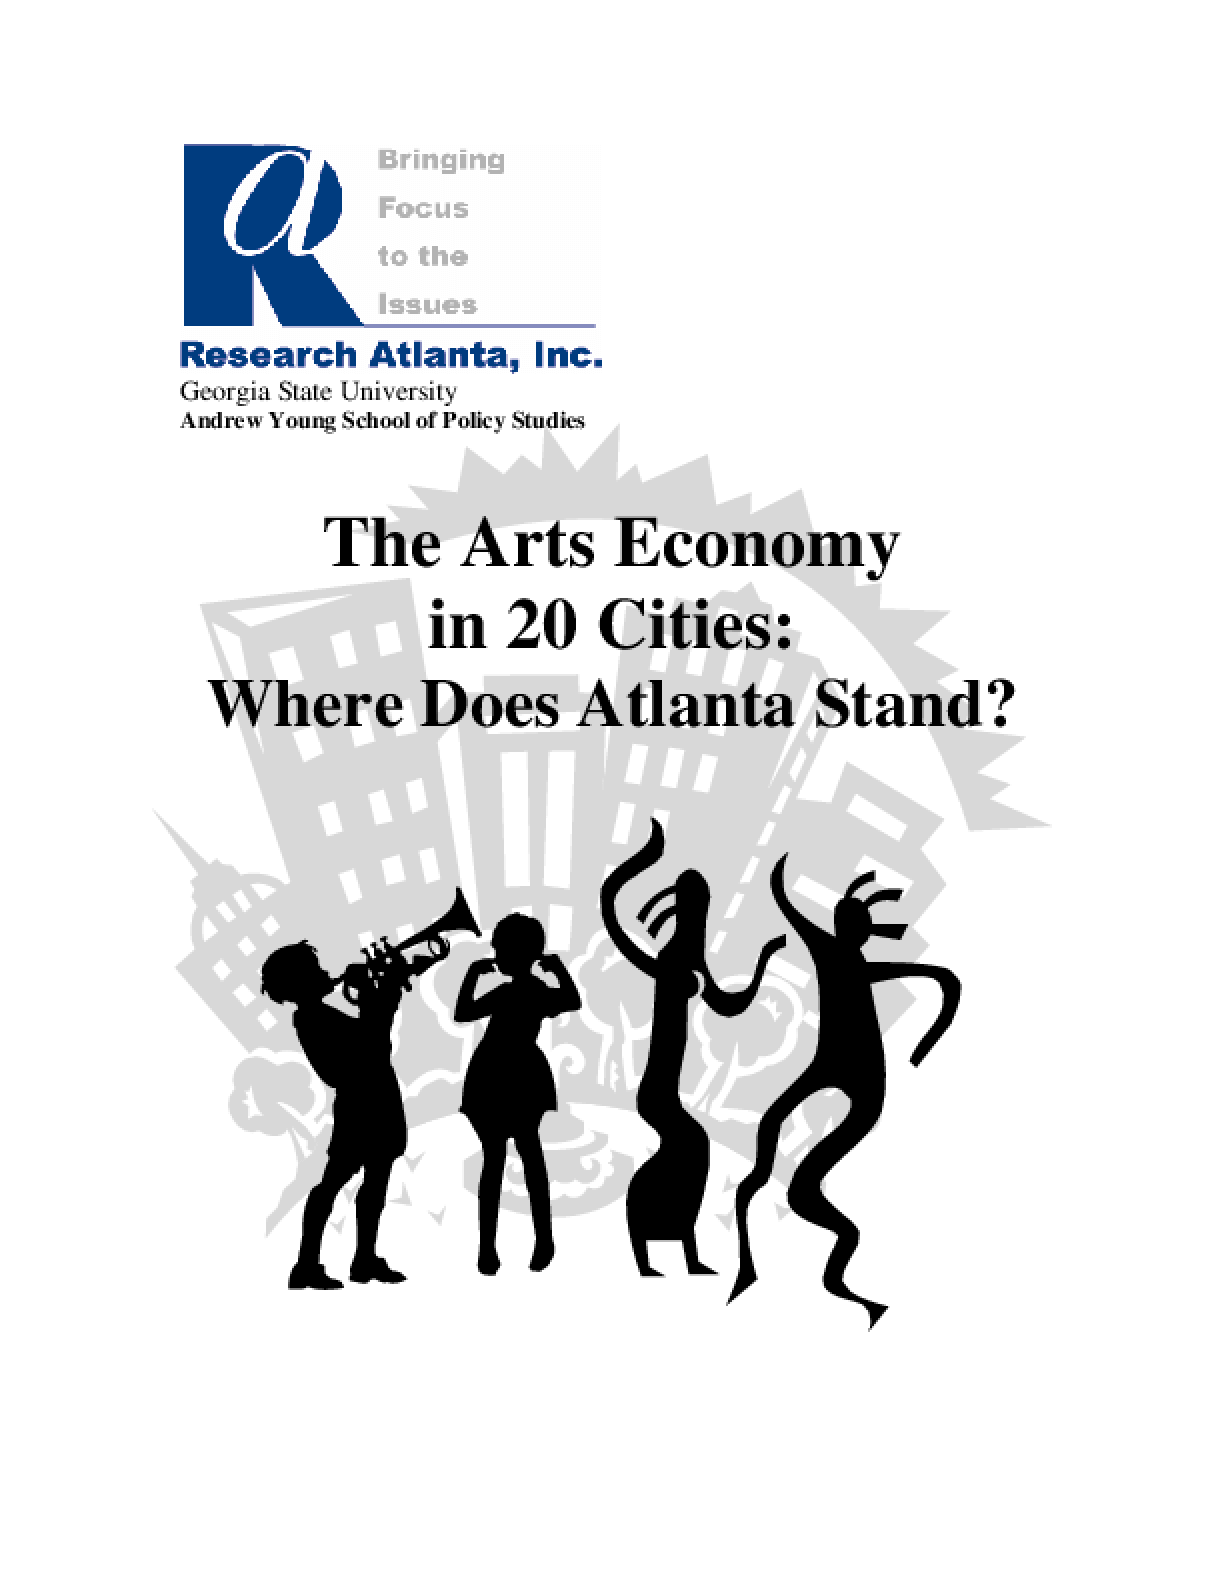 The Arts Economy in 20 Cities: Where Does Atlanta Stand?